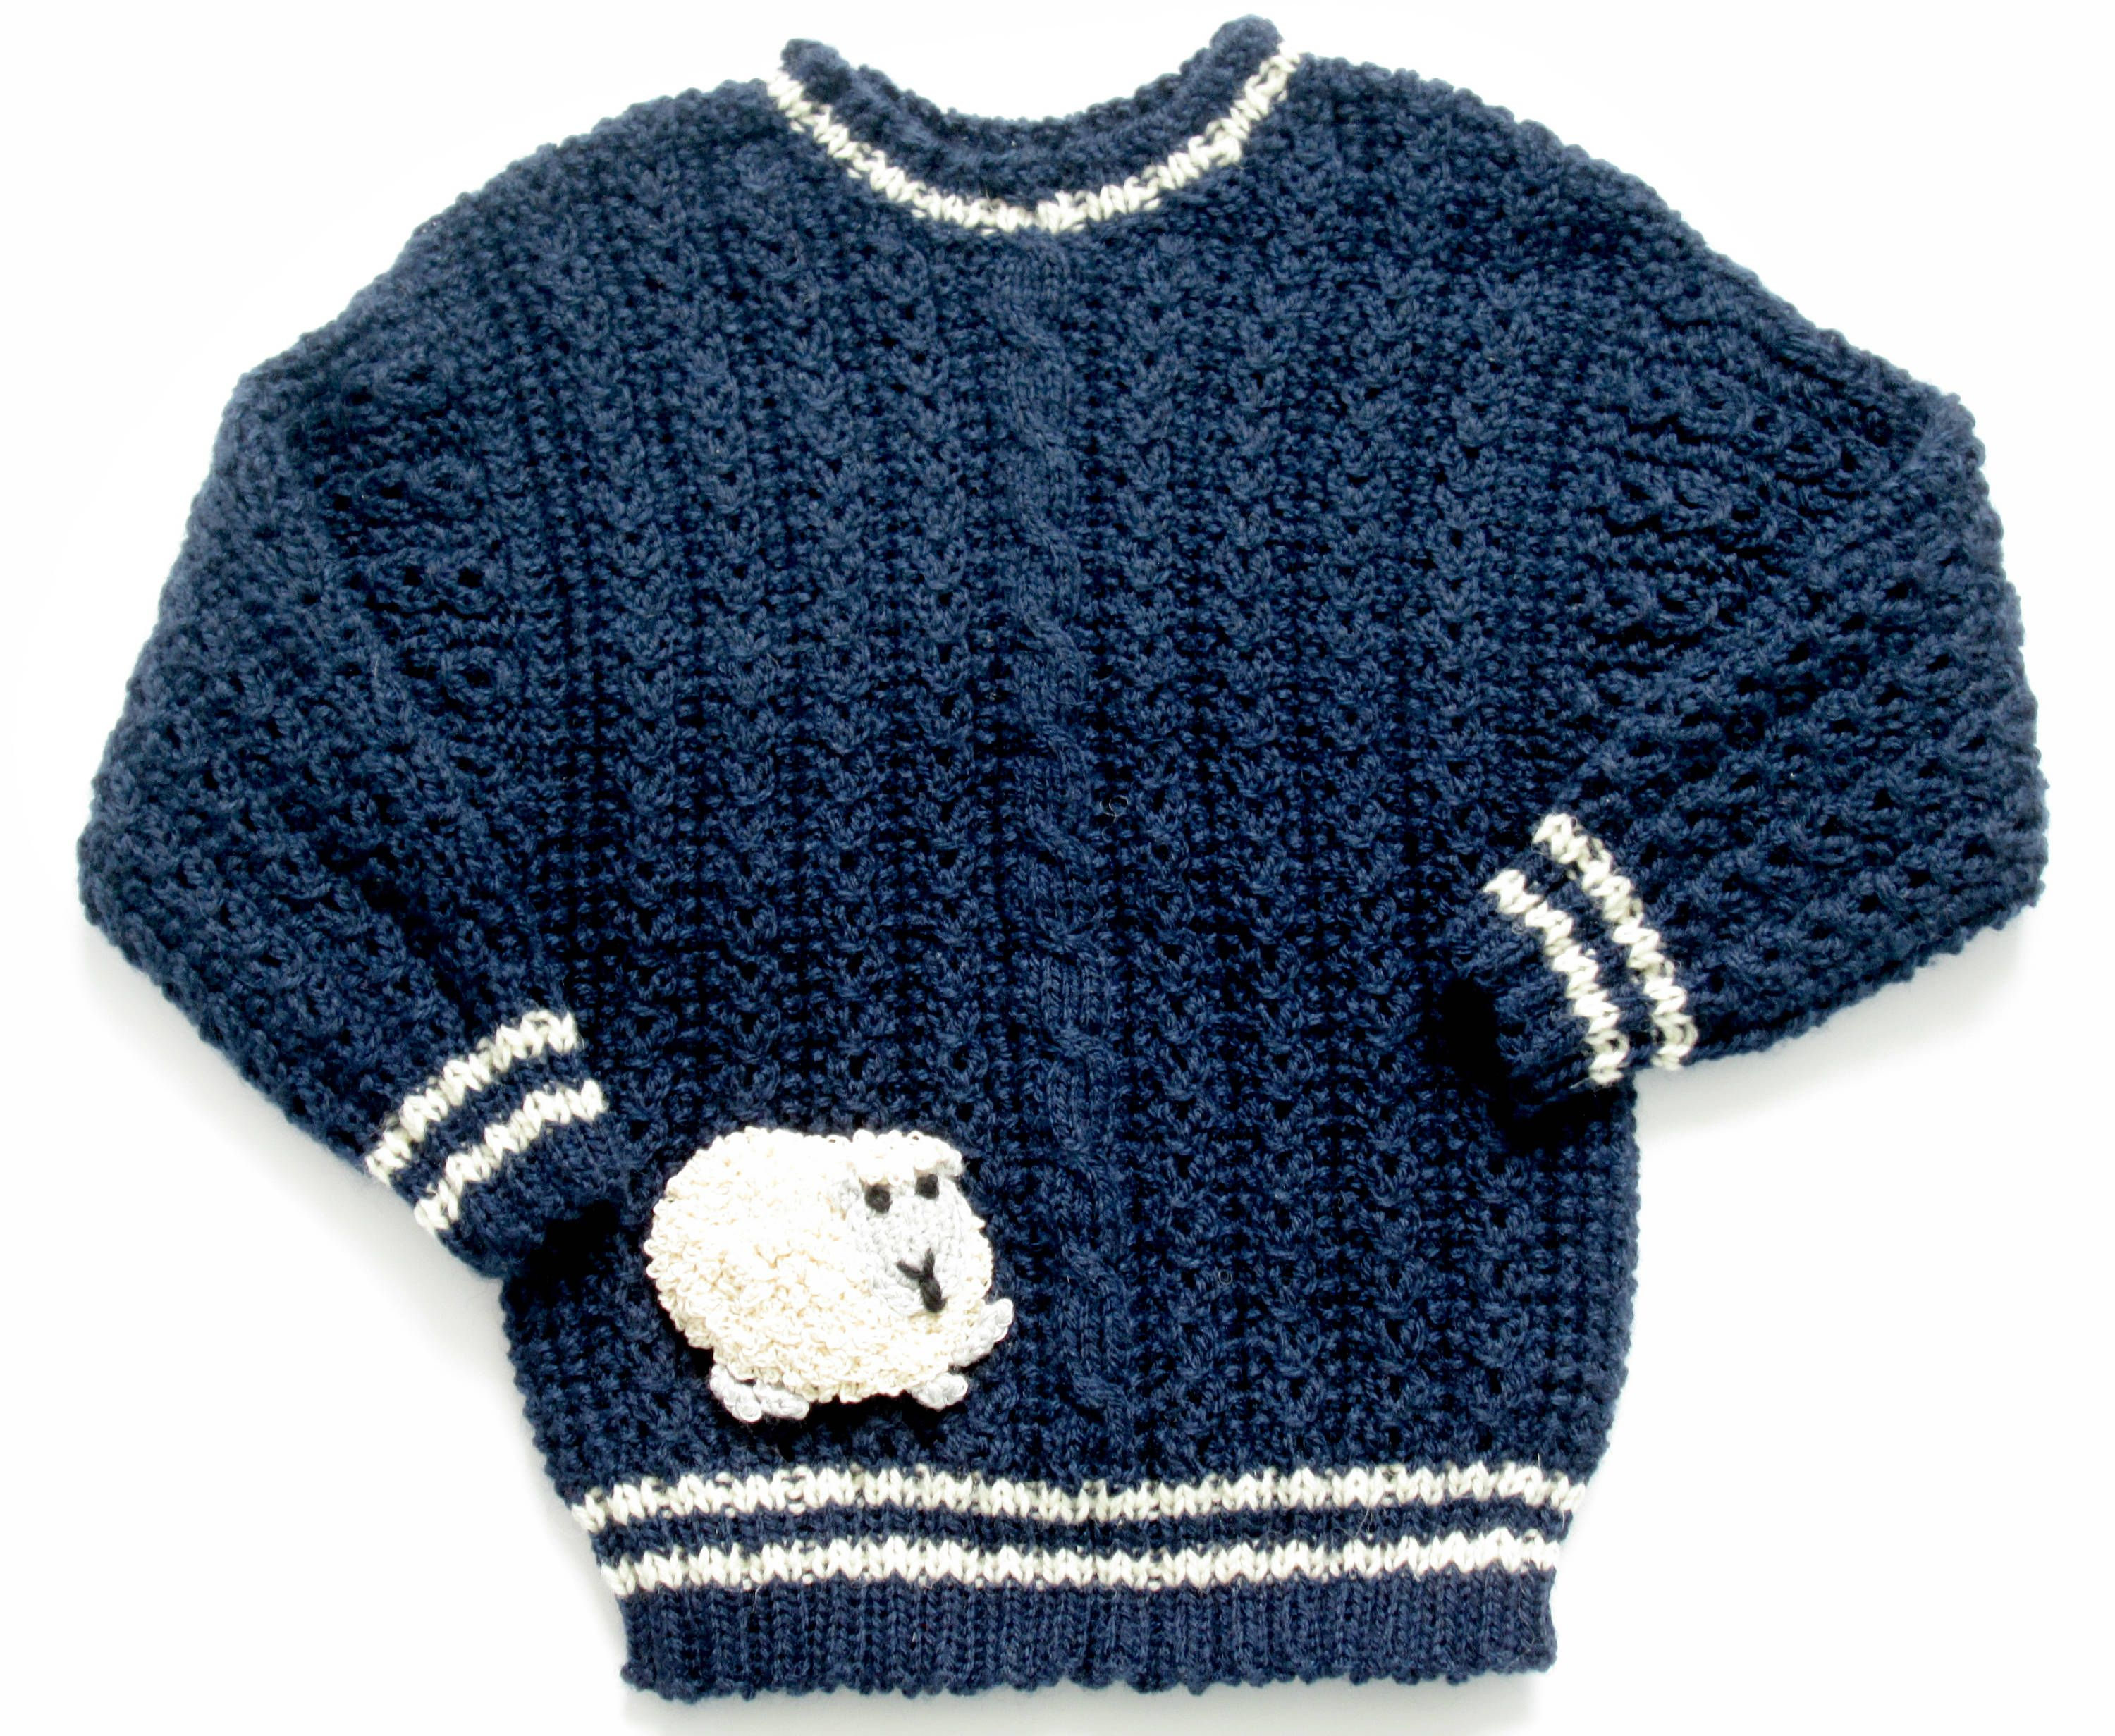 539c99e978a3 Boys Blue Sweater with White Strips